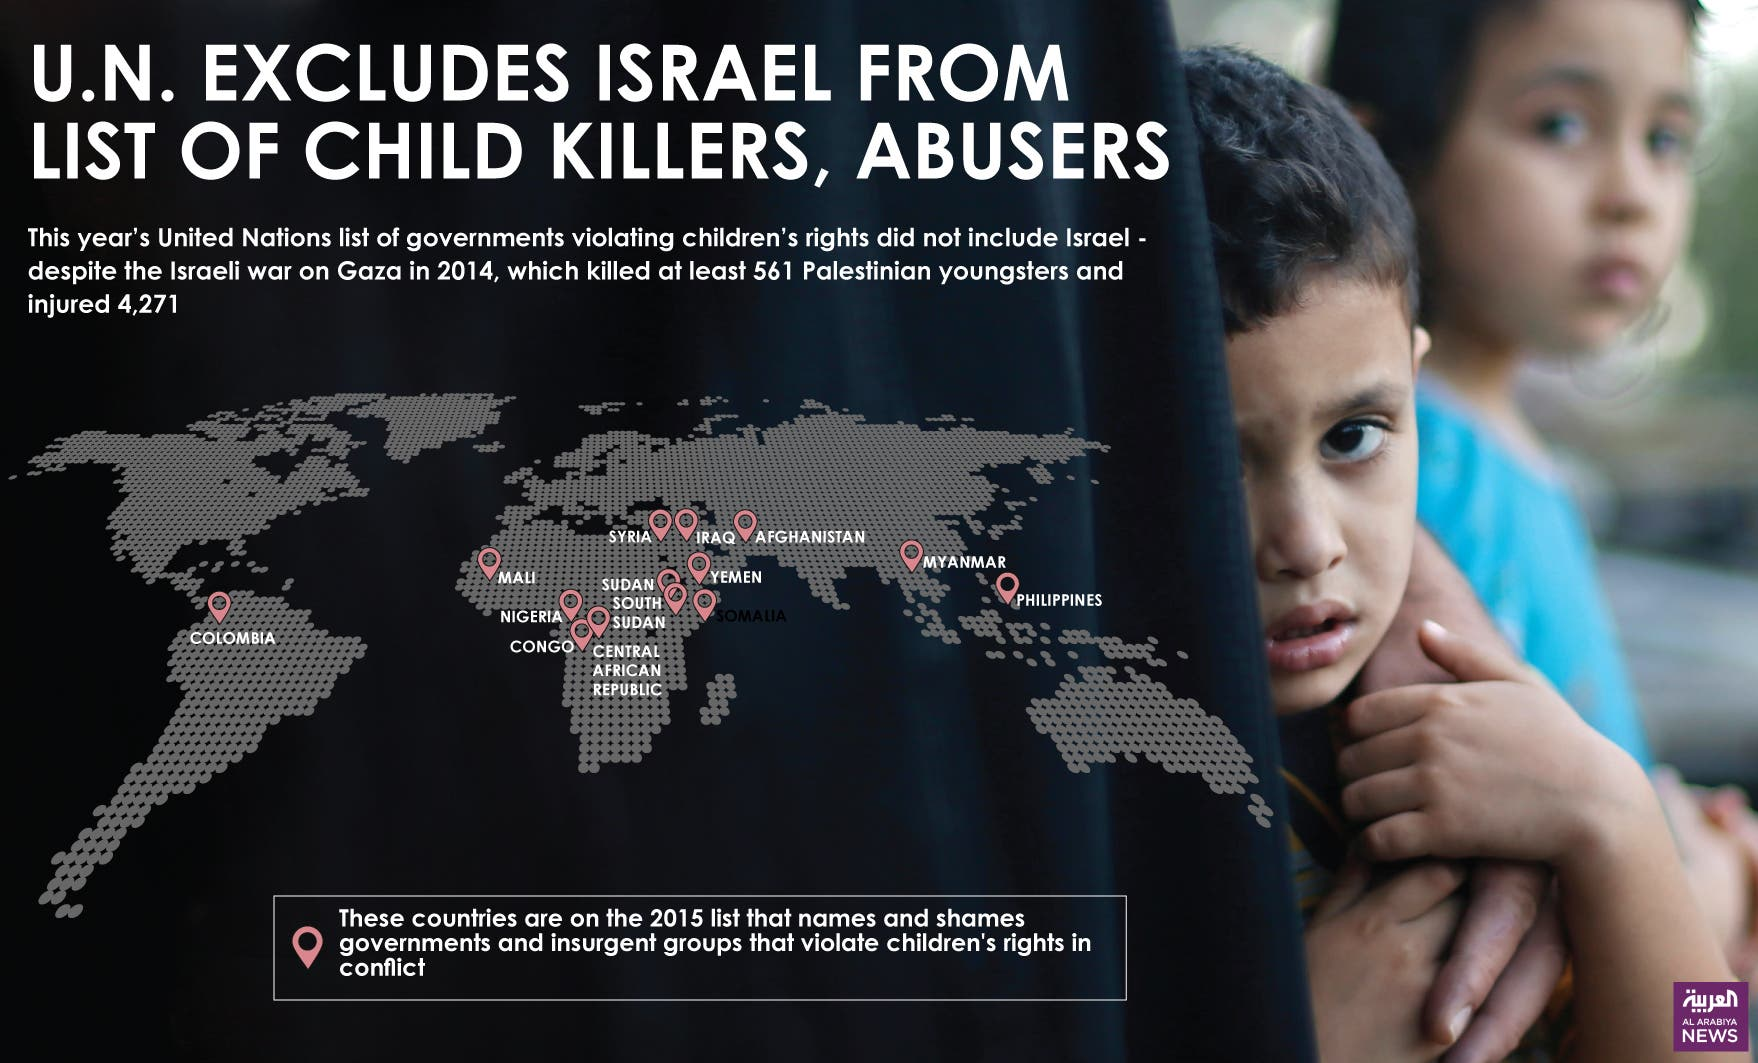 Infographic: U.N. excludes Israel from list of child killers, abusers